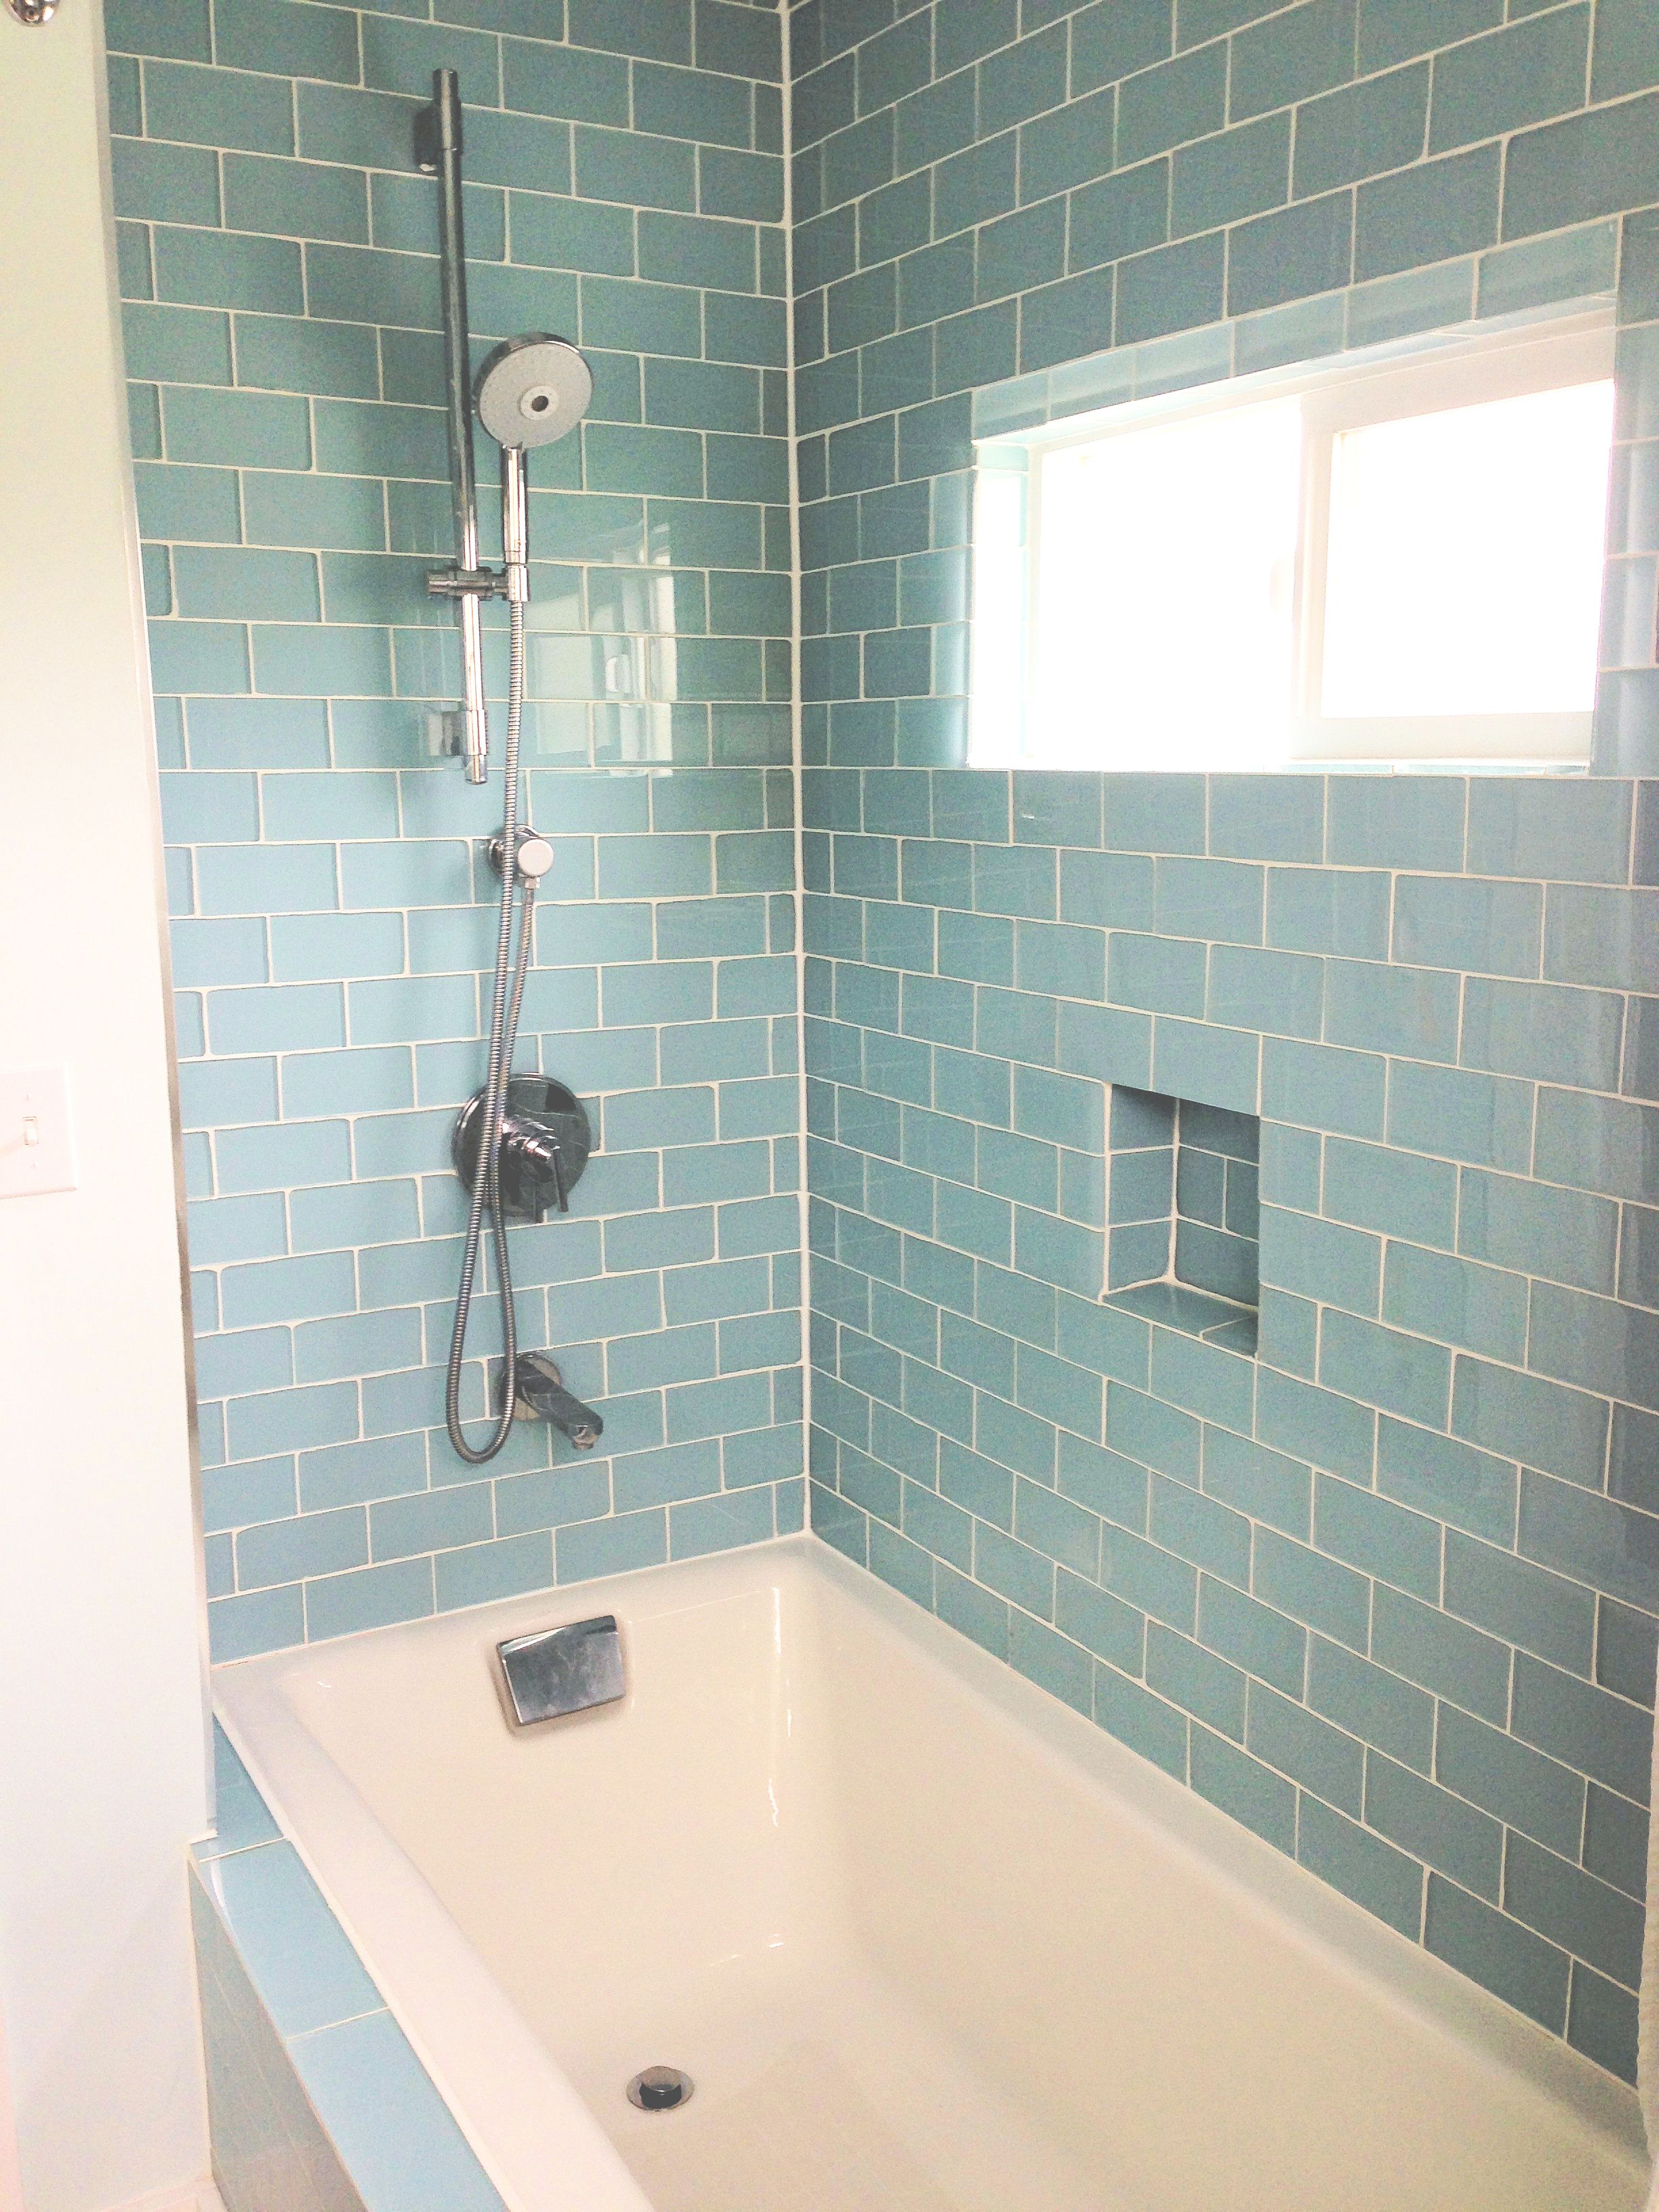 Shower Subway Tile vapor glass subway tile | subway tiles, outlets and glass shower